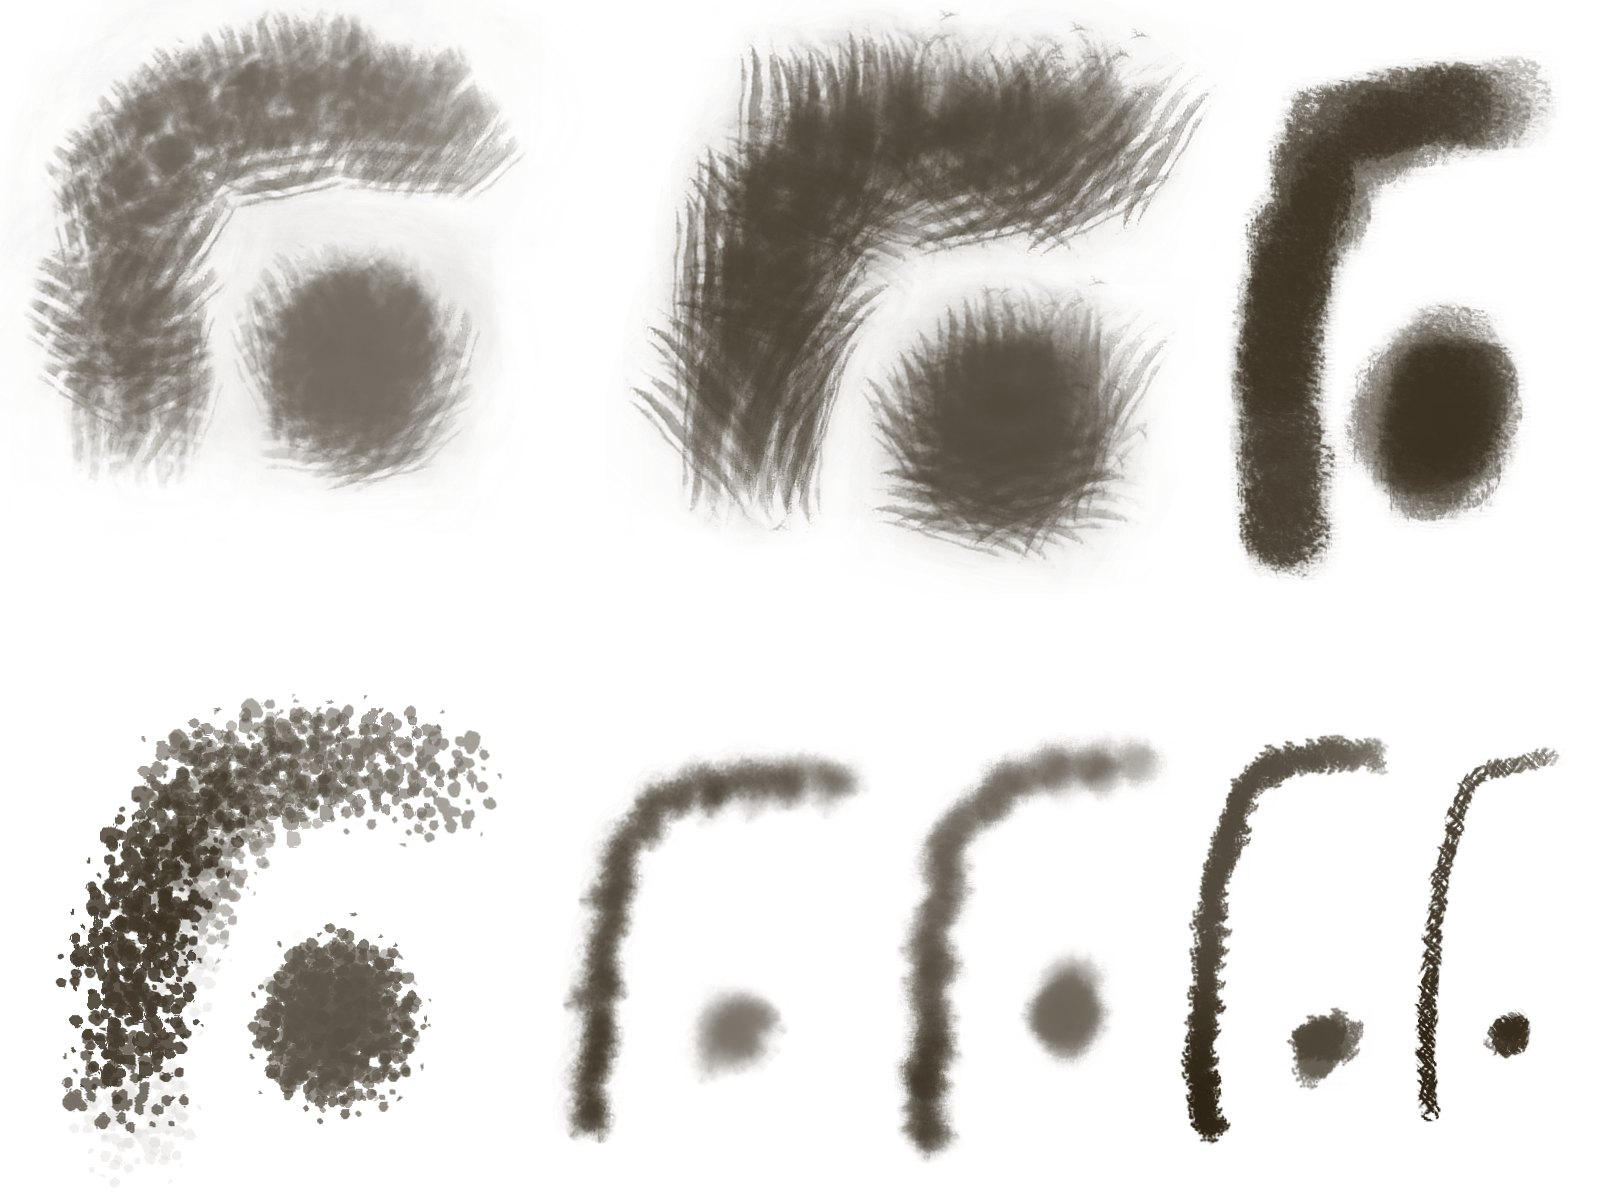 GIMP Animated Brushes - 3 by Filsd